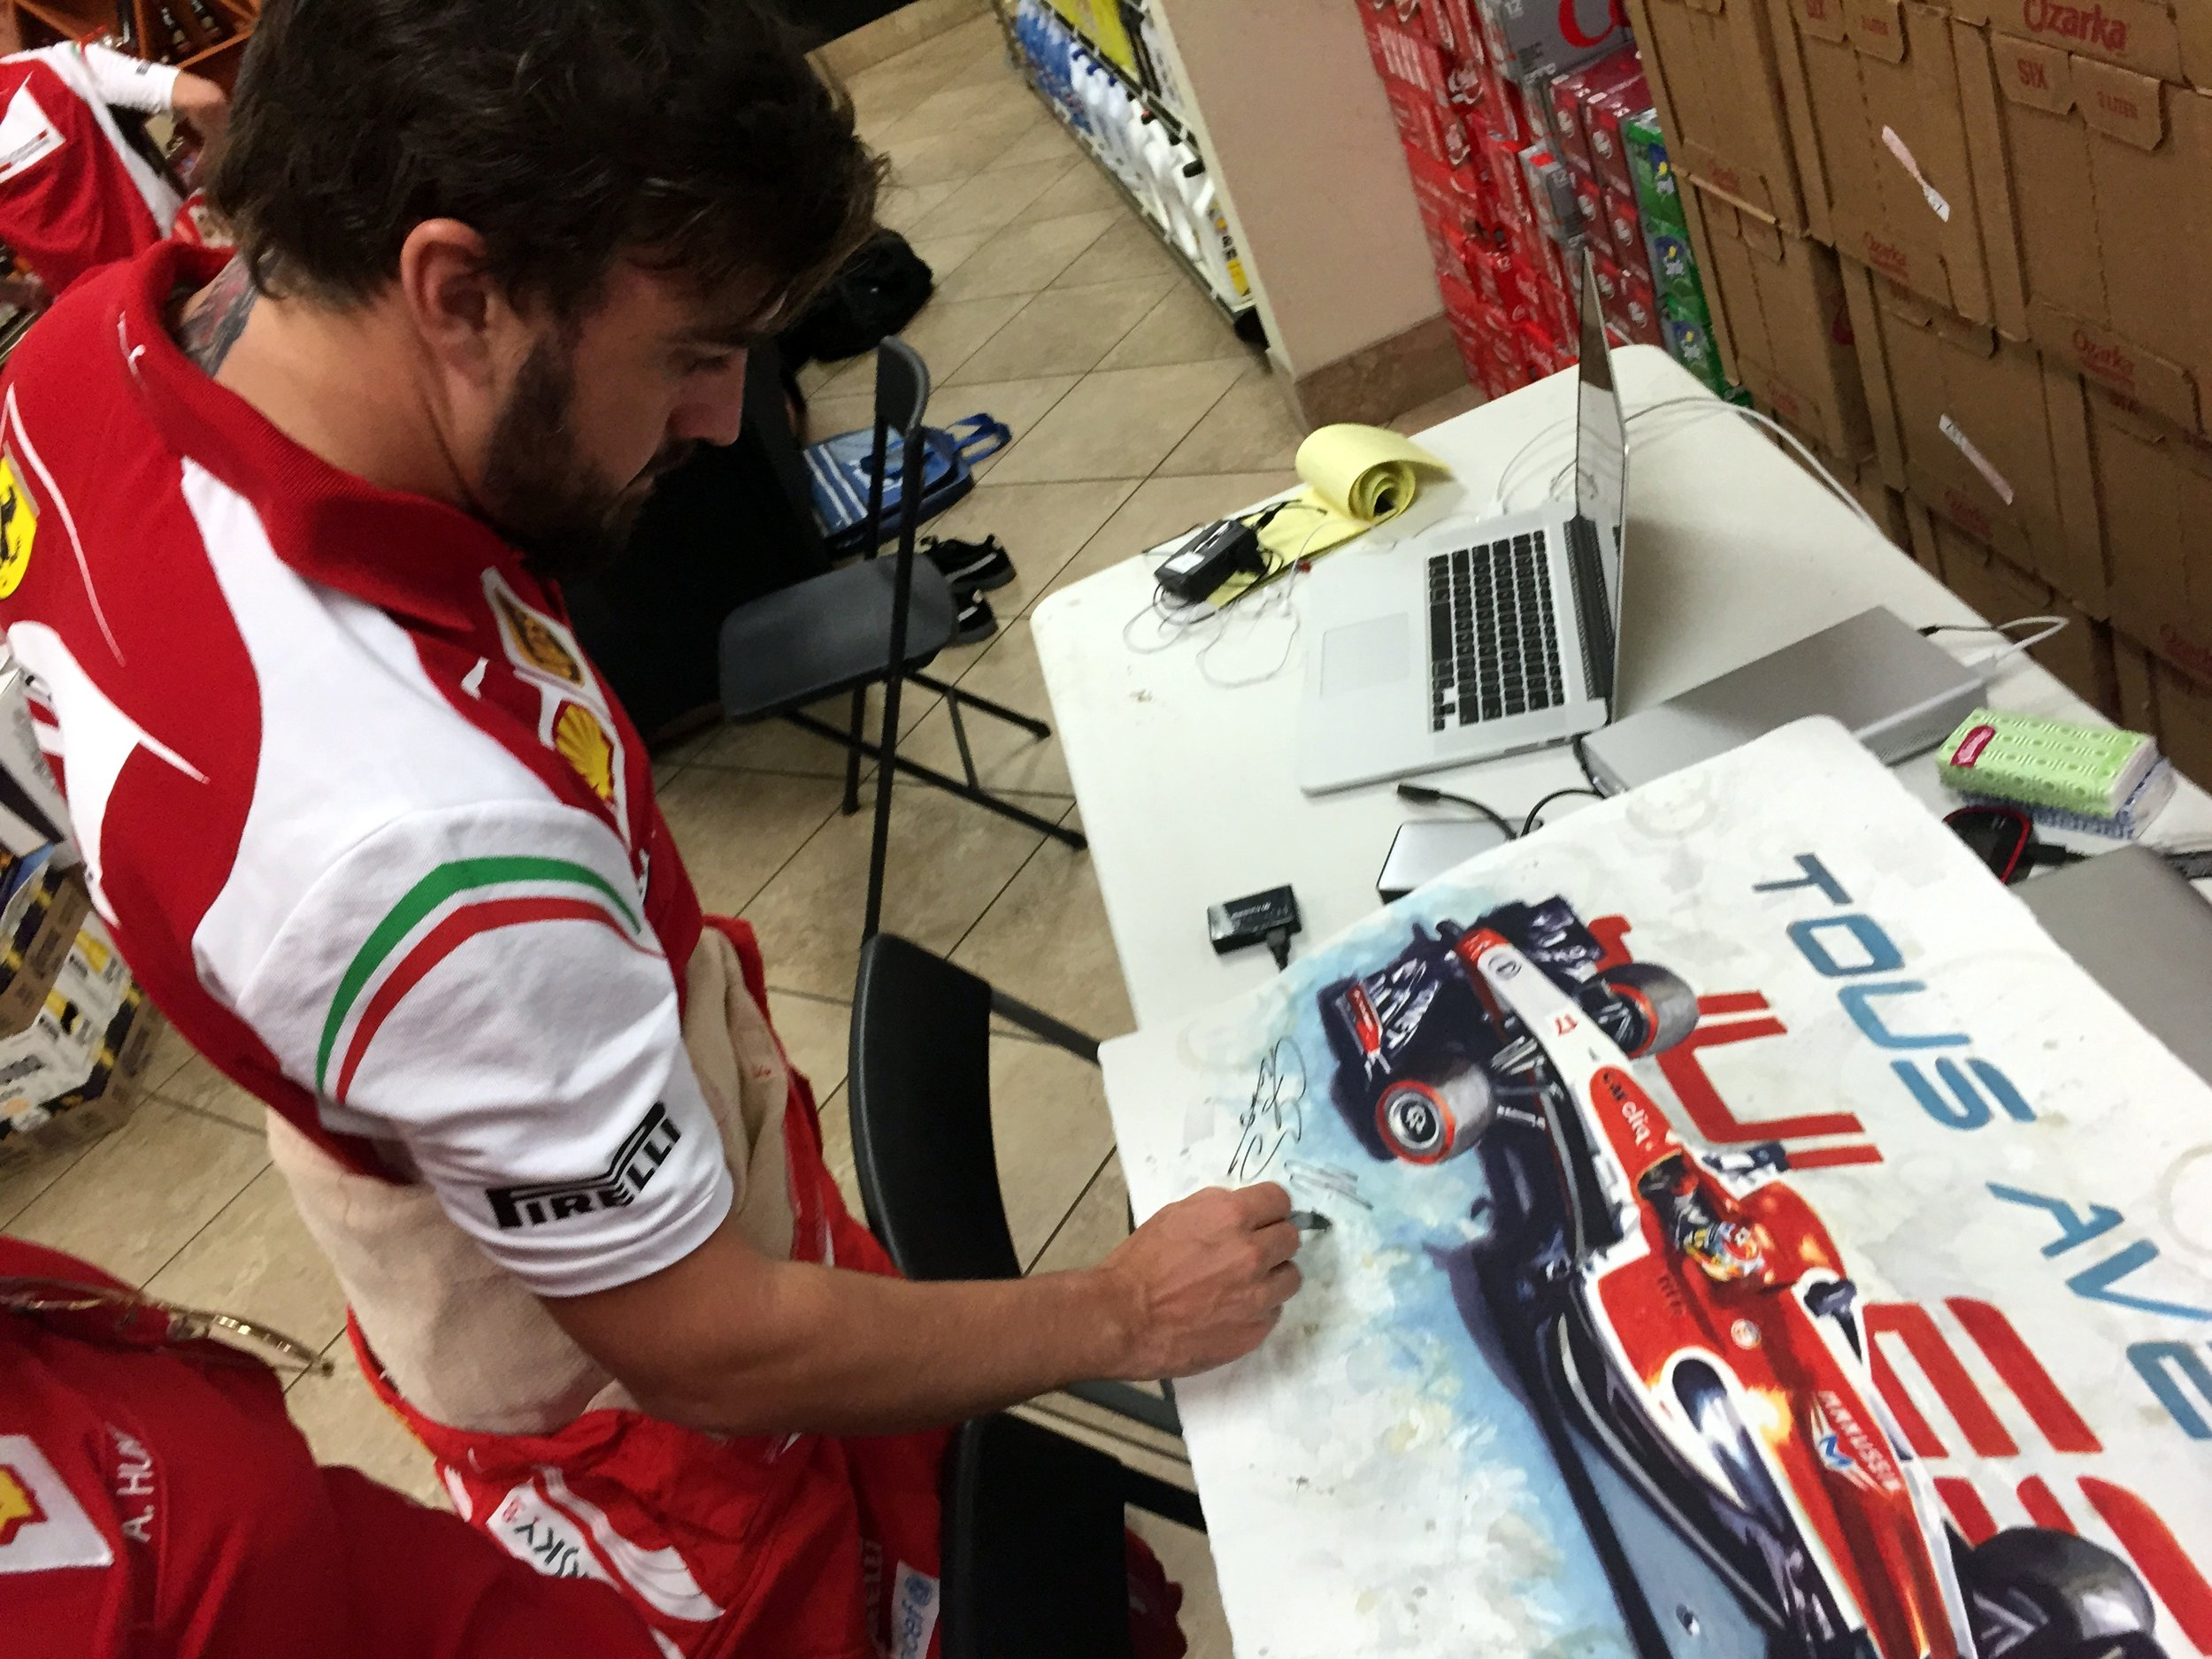 Fernando Alonso signing a tribute painting 'With You' of Jules Bianchi at the USGP